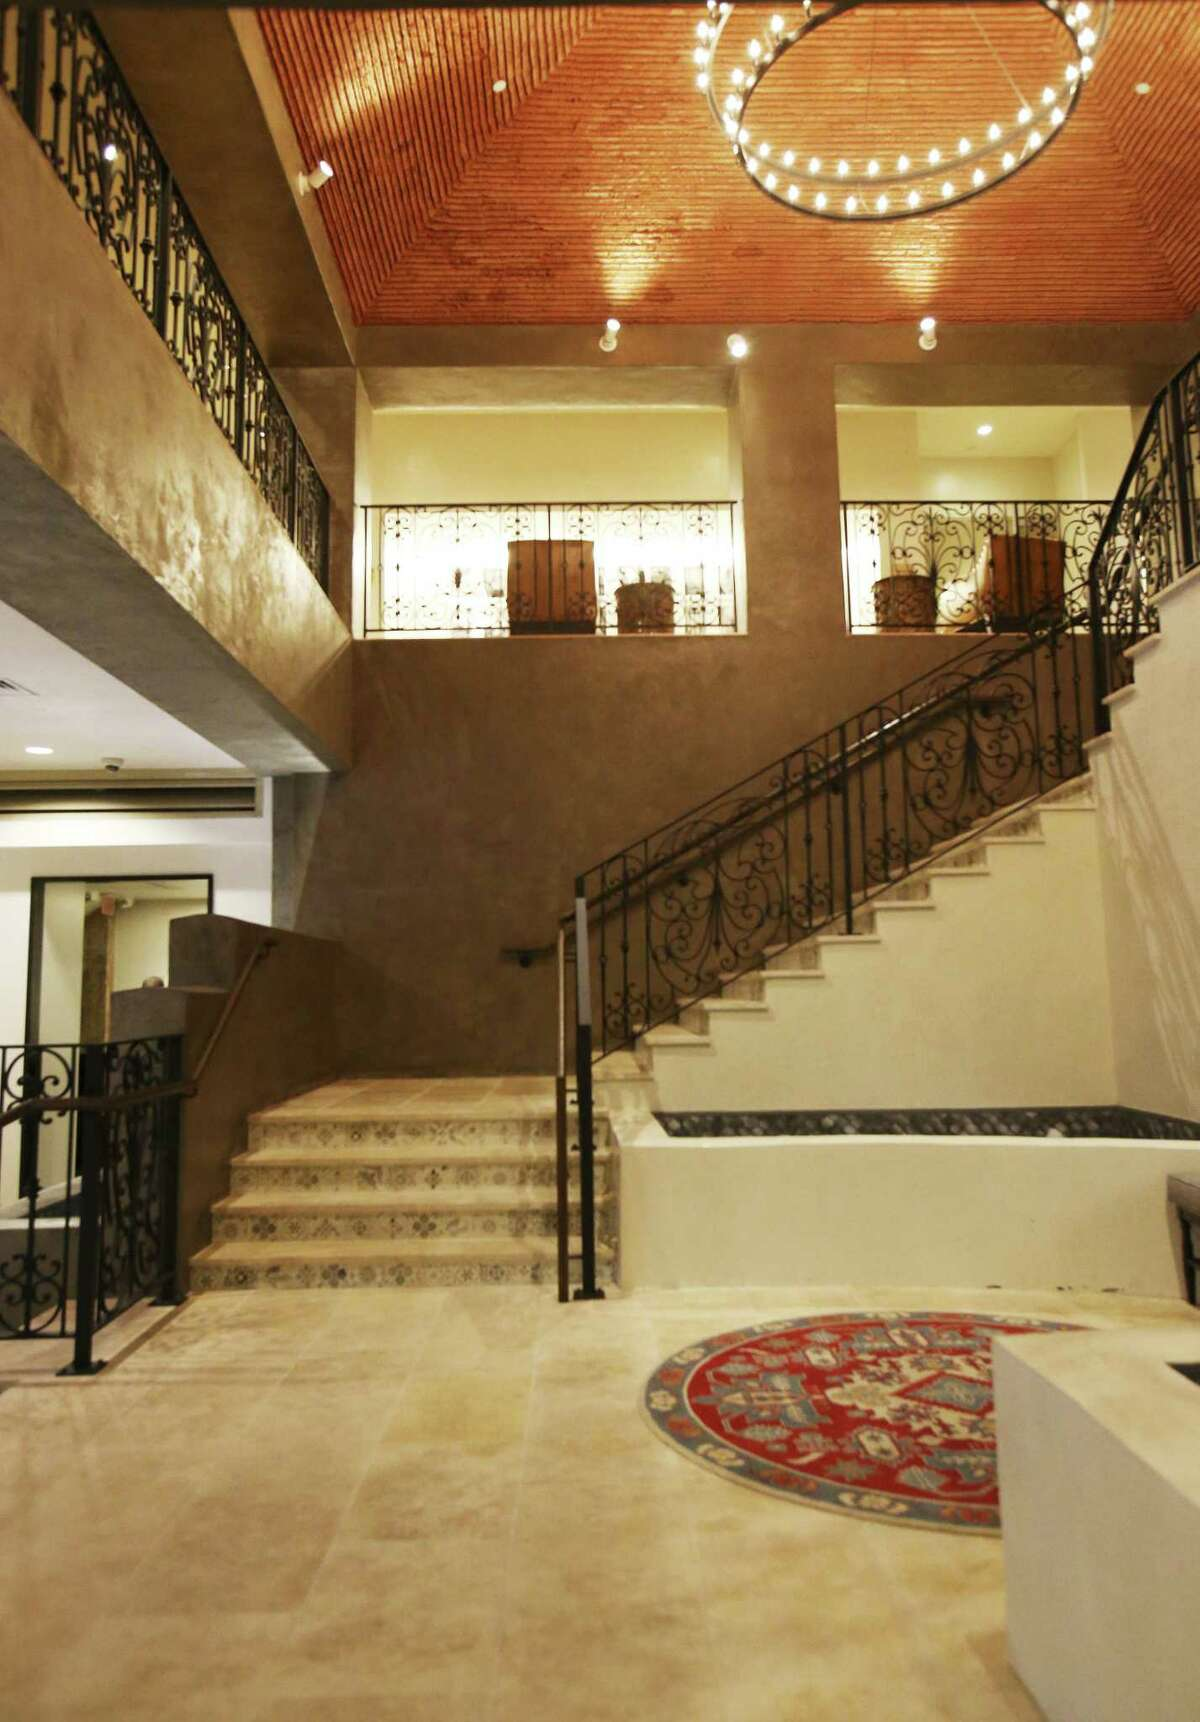 The Valencia foyer features a limestone staircase with a wrought iron railing, along with a custom chandelier and water feature.